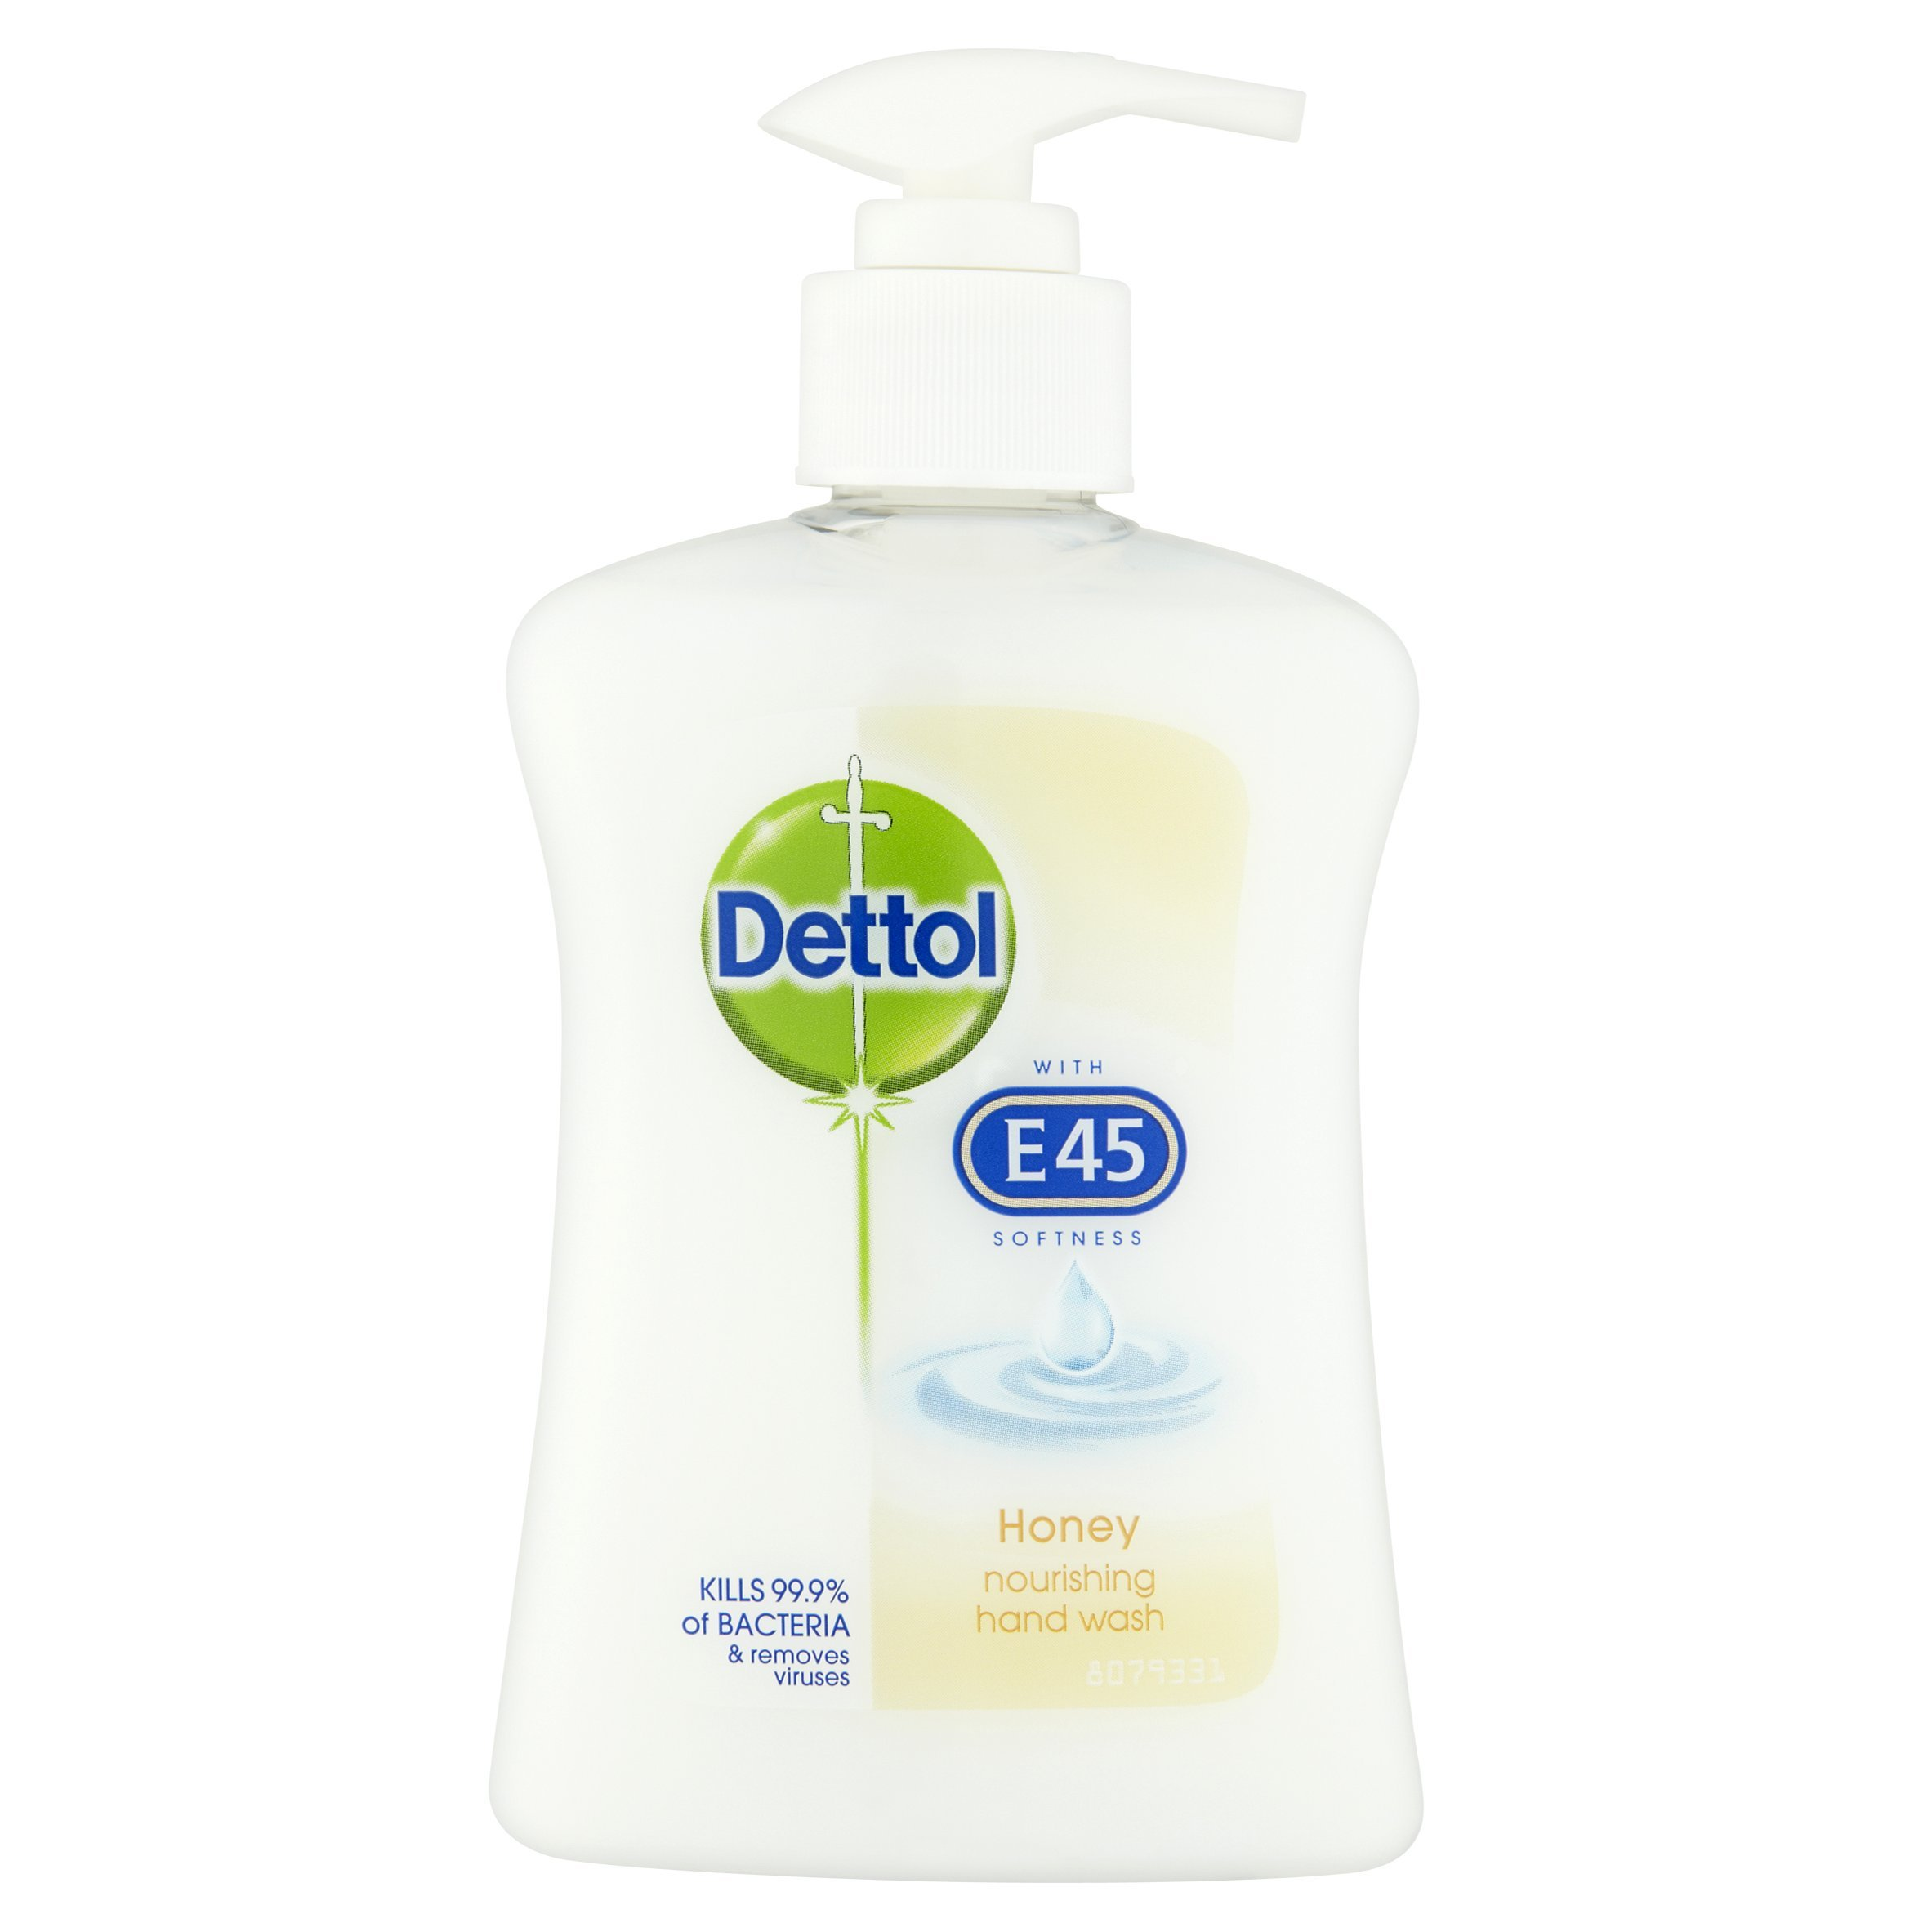 Dettol with E45 Handwash – Honey, 250 ml